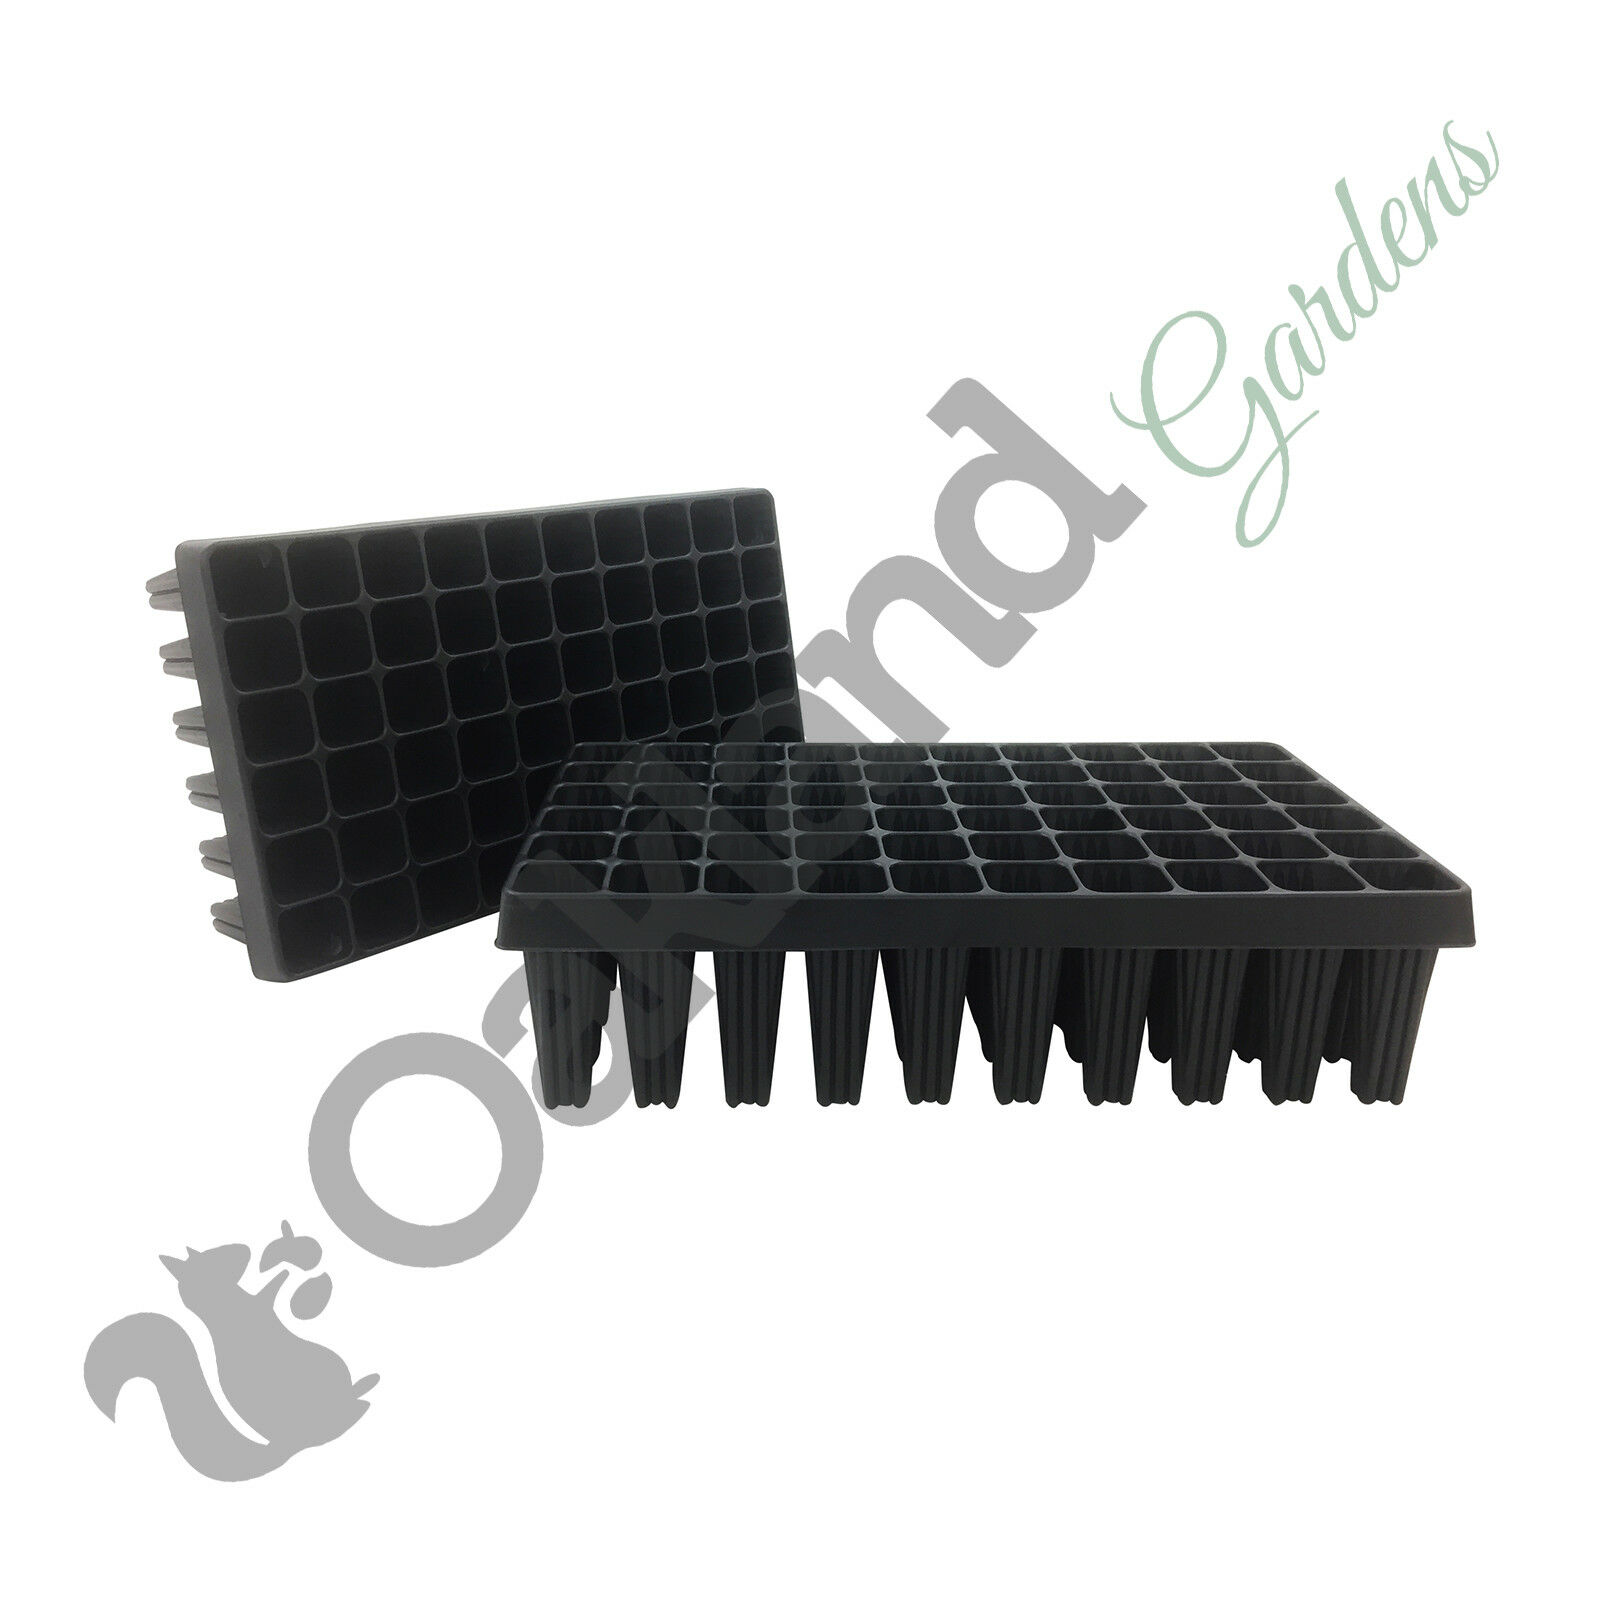 20 x 60 Cell Deep Rootrainers Plug Plant Seed Tray Root trainers Extra Large